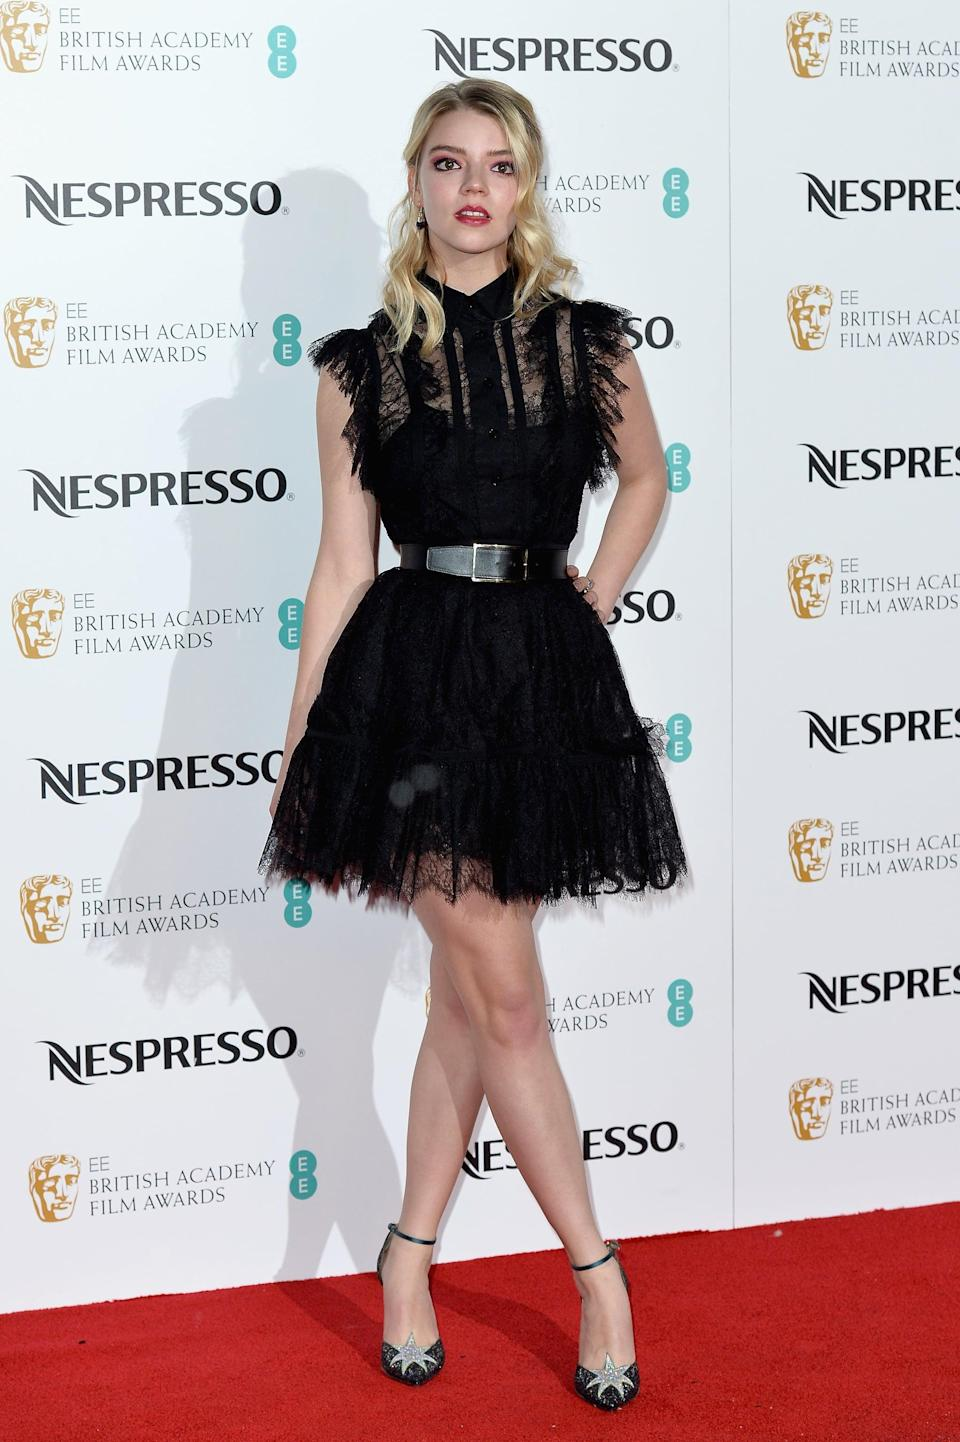 <p>Anya wore an Elie Saab LBD cinched in at the waist.</p>